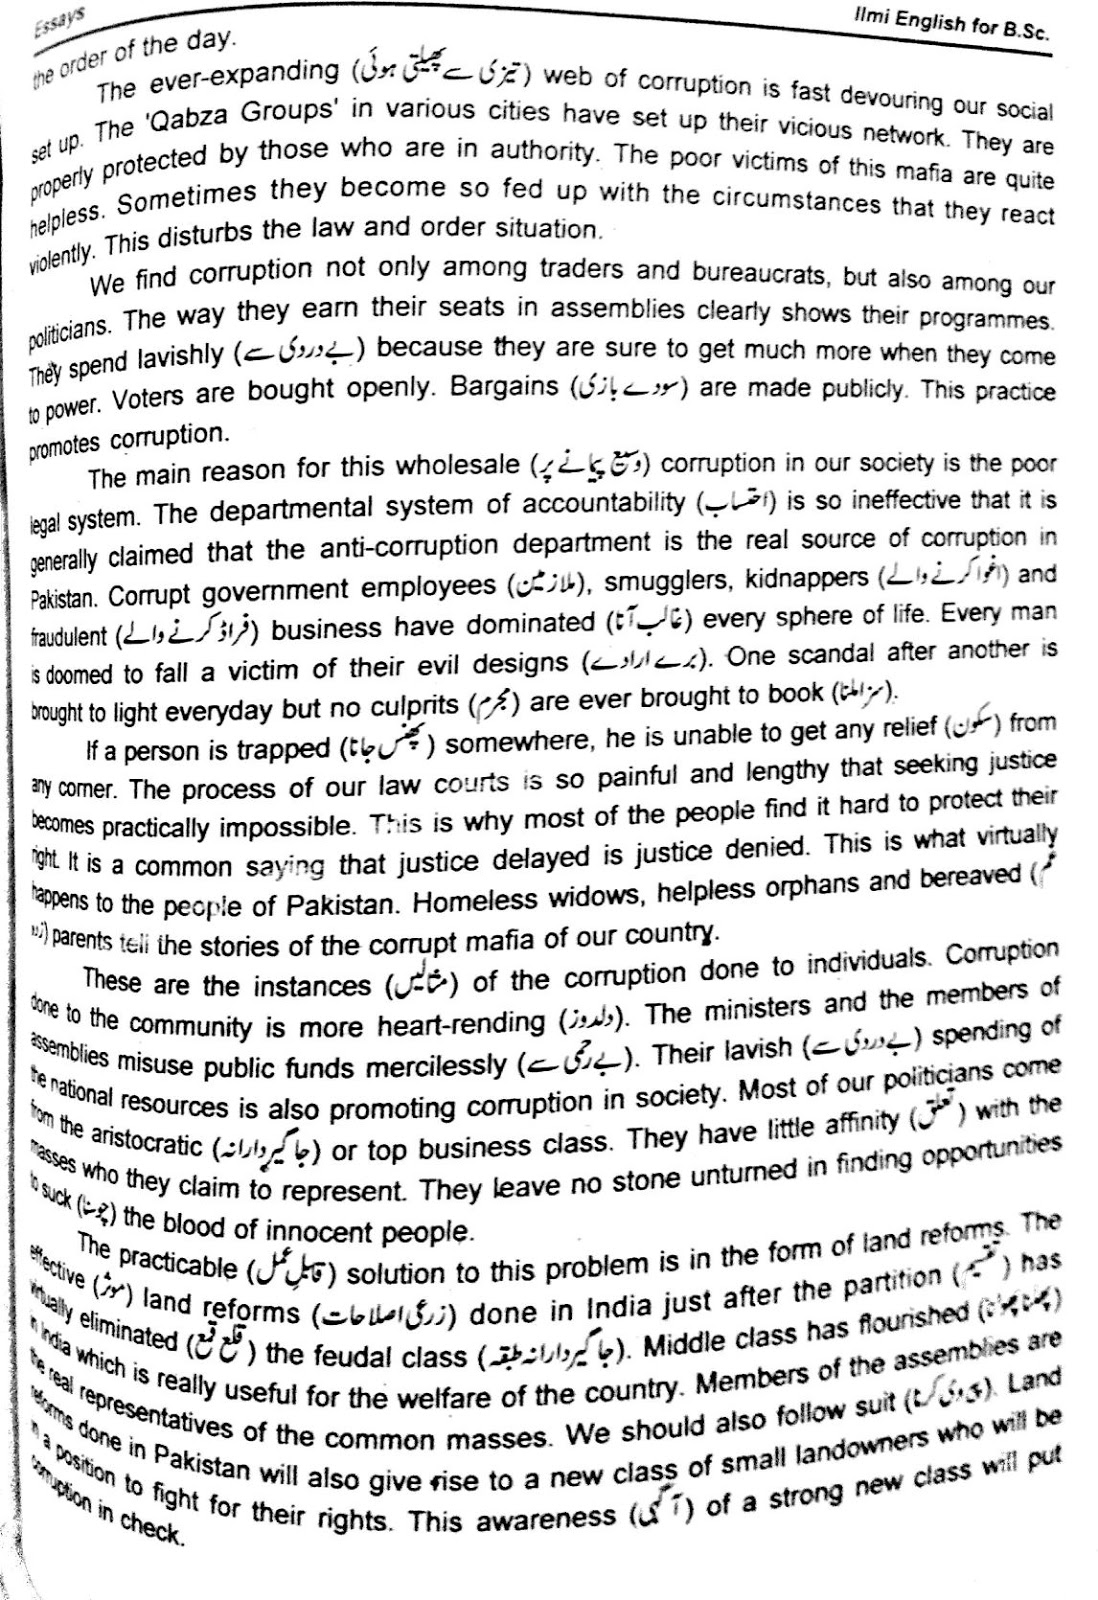 Essay on corruption in simple english